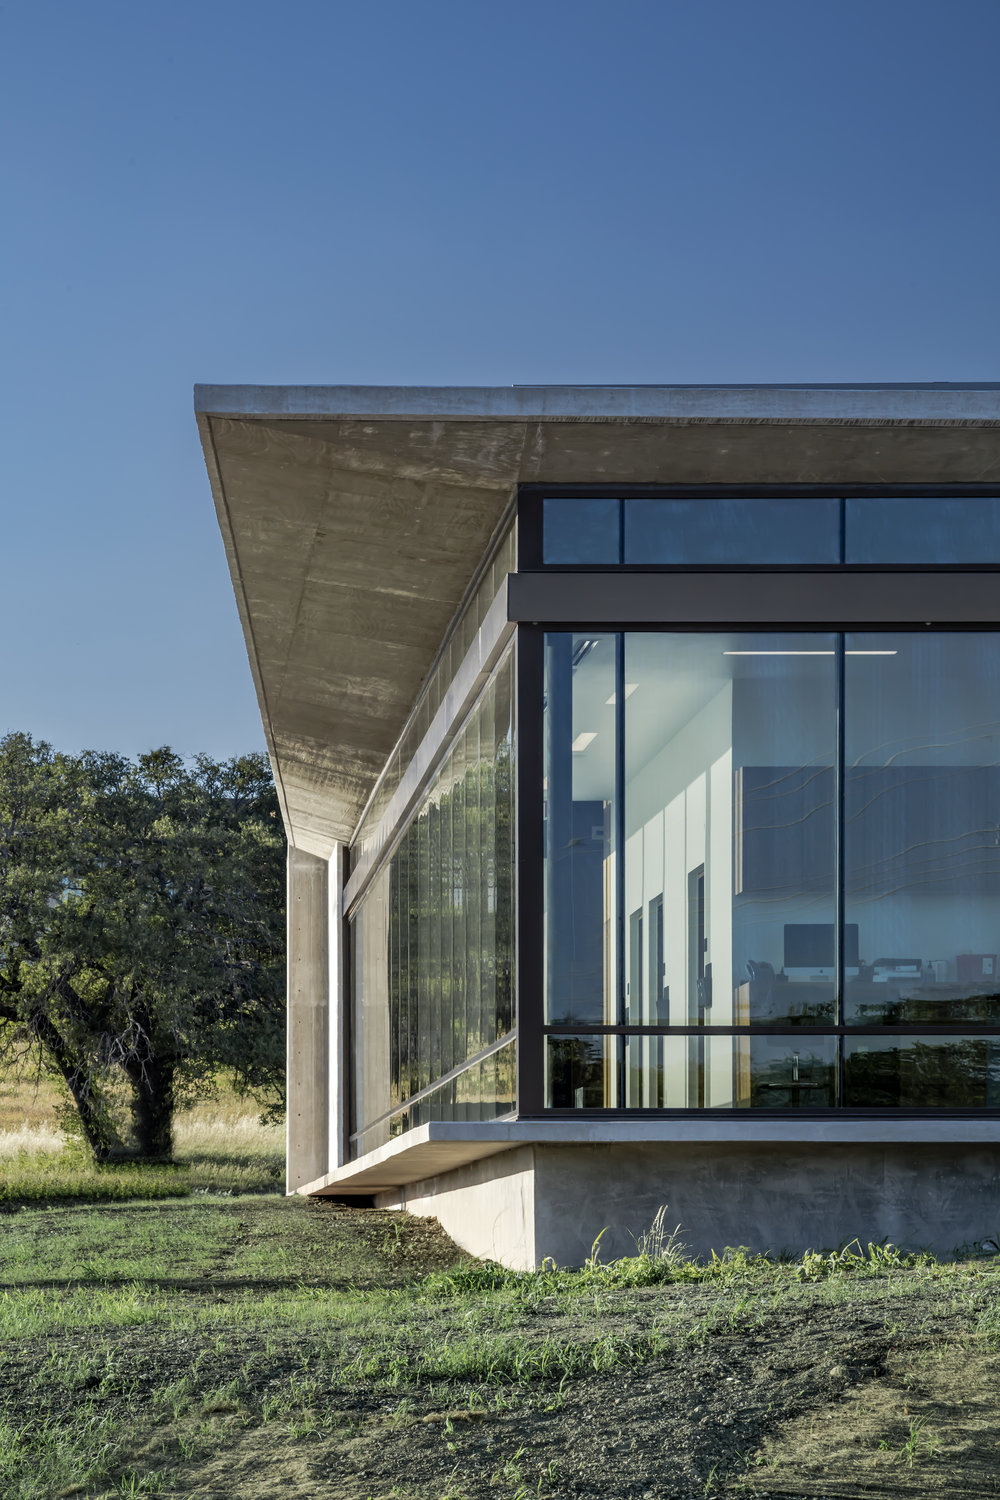 17 Westlake Dermatology Marble Falls by Matt Fajkus Architecture_exterior photo by Charles Davis Smith.jpg